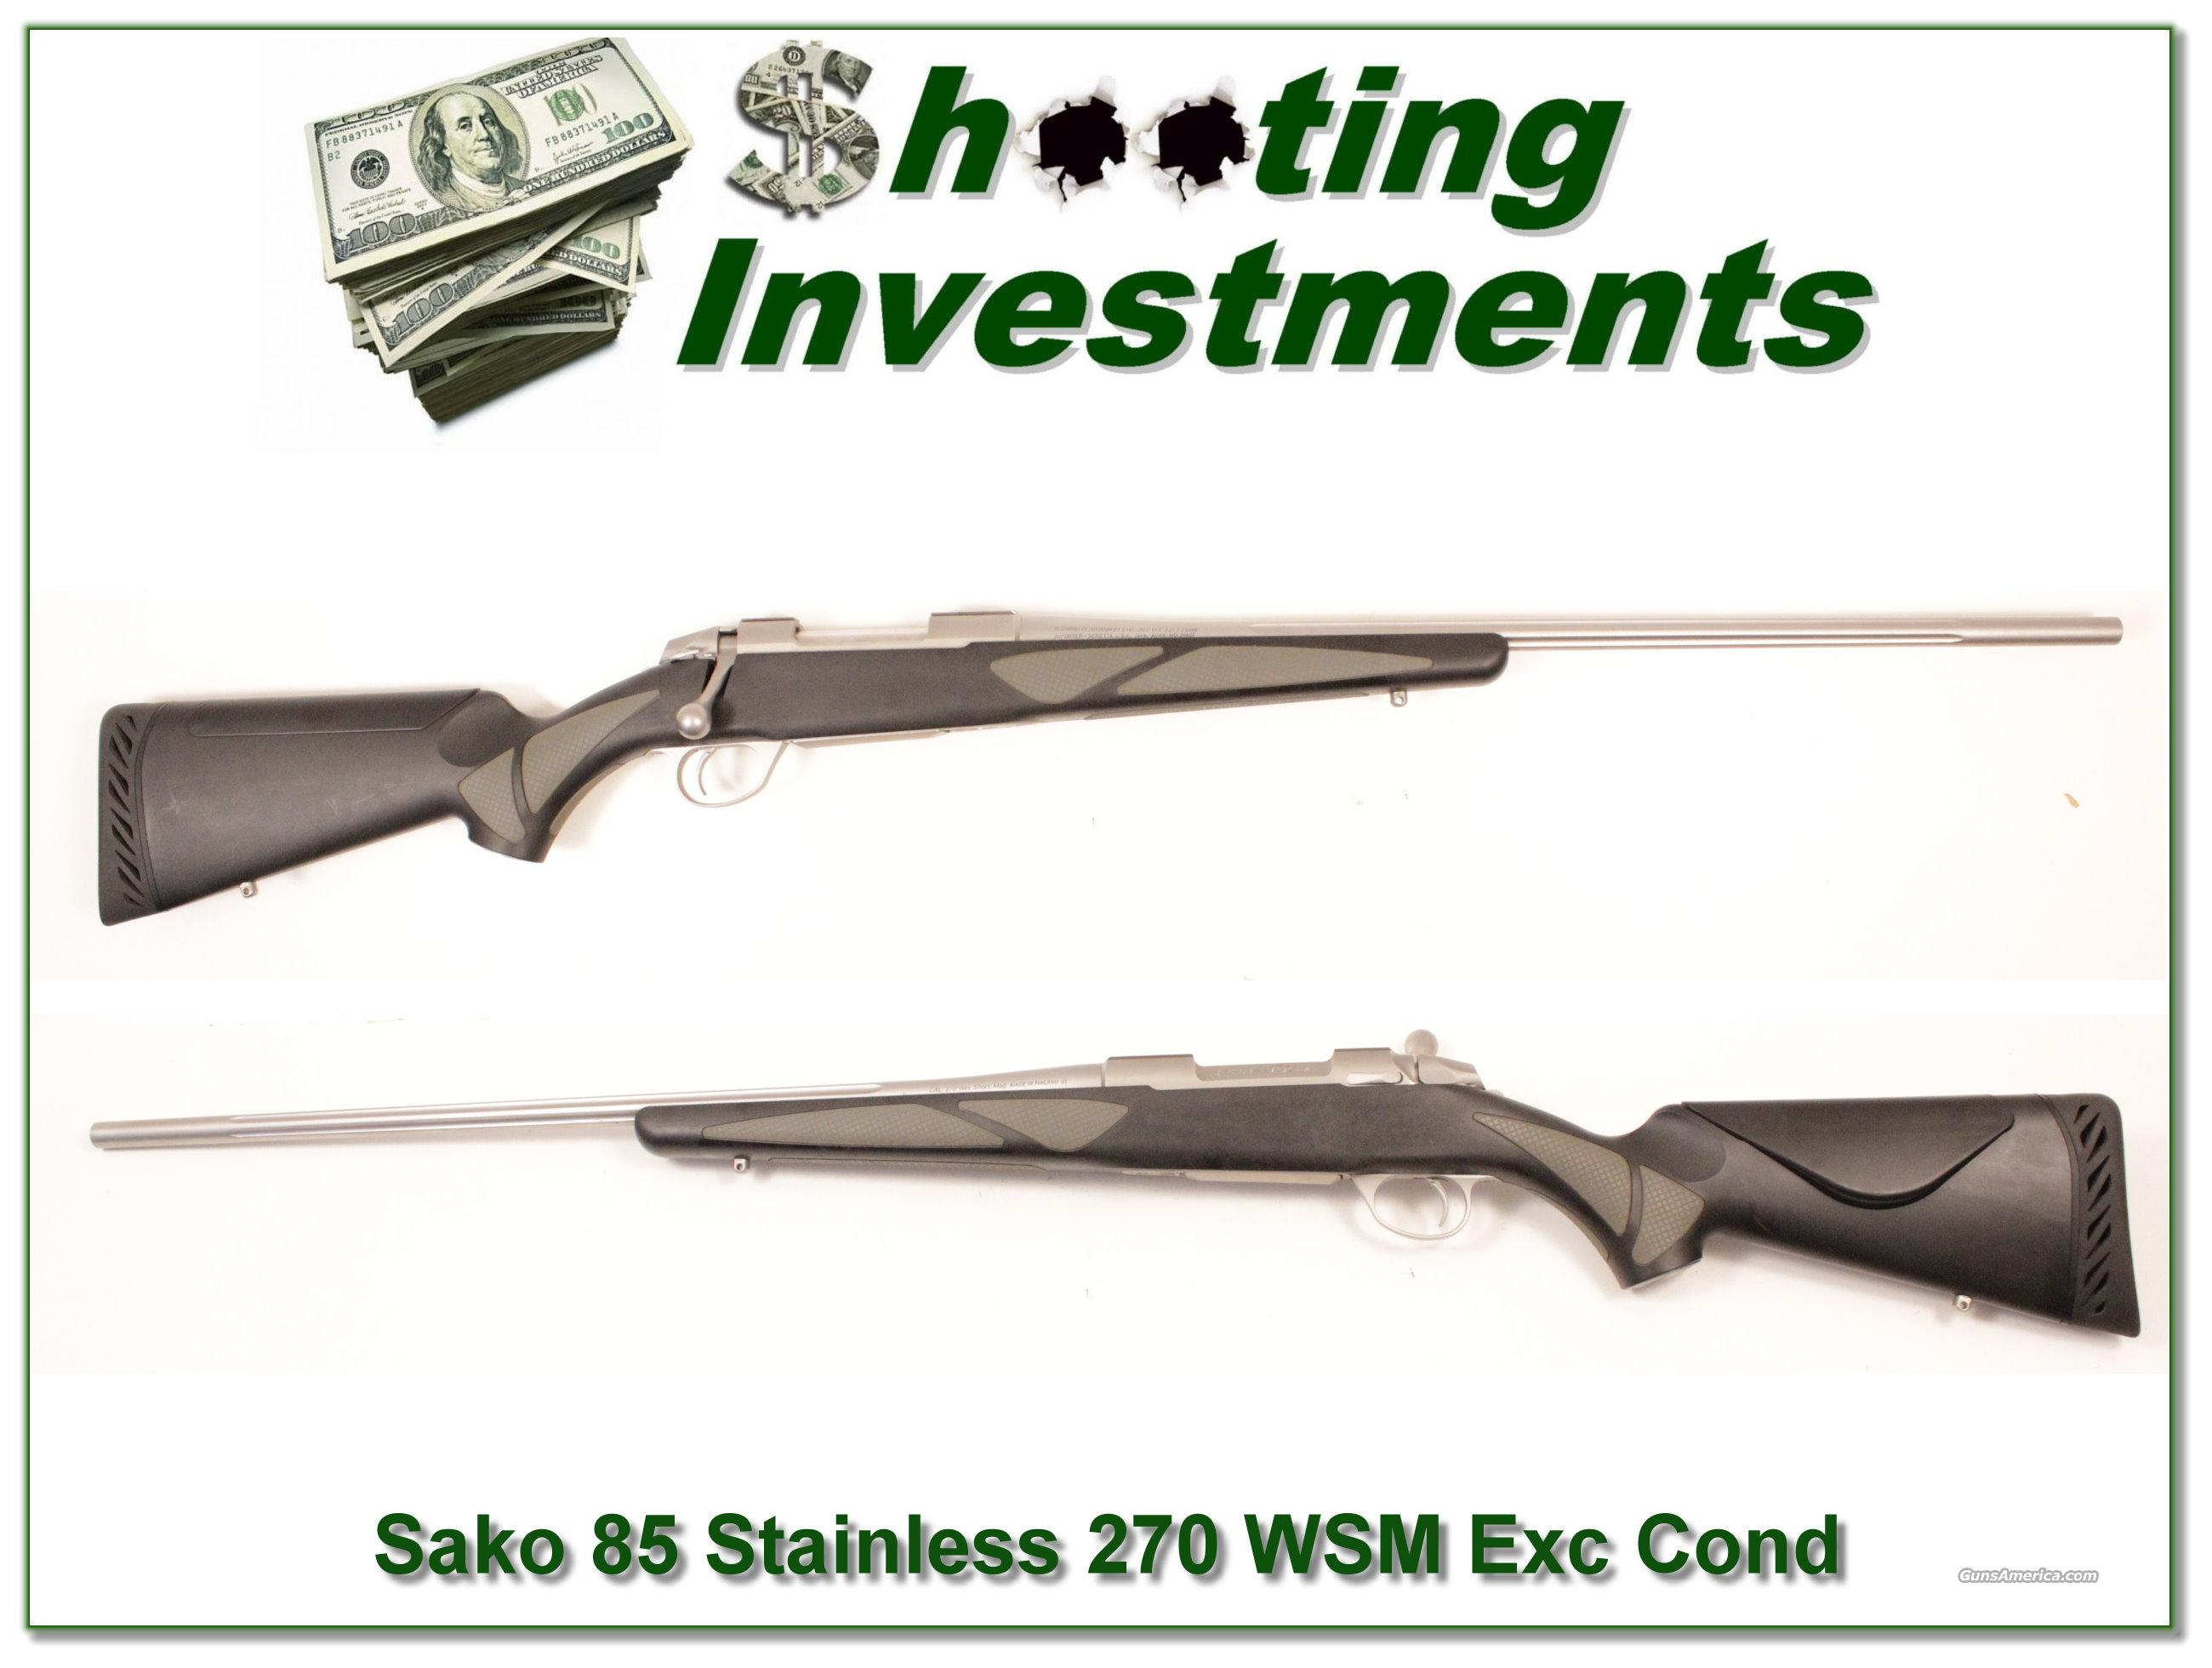 Sako 85 SM Stainless 270 WSM Exc Cond!  Guns > Rifles > Sako Rifles > Other Bolt Action